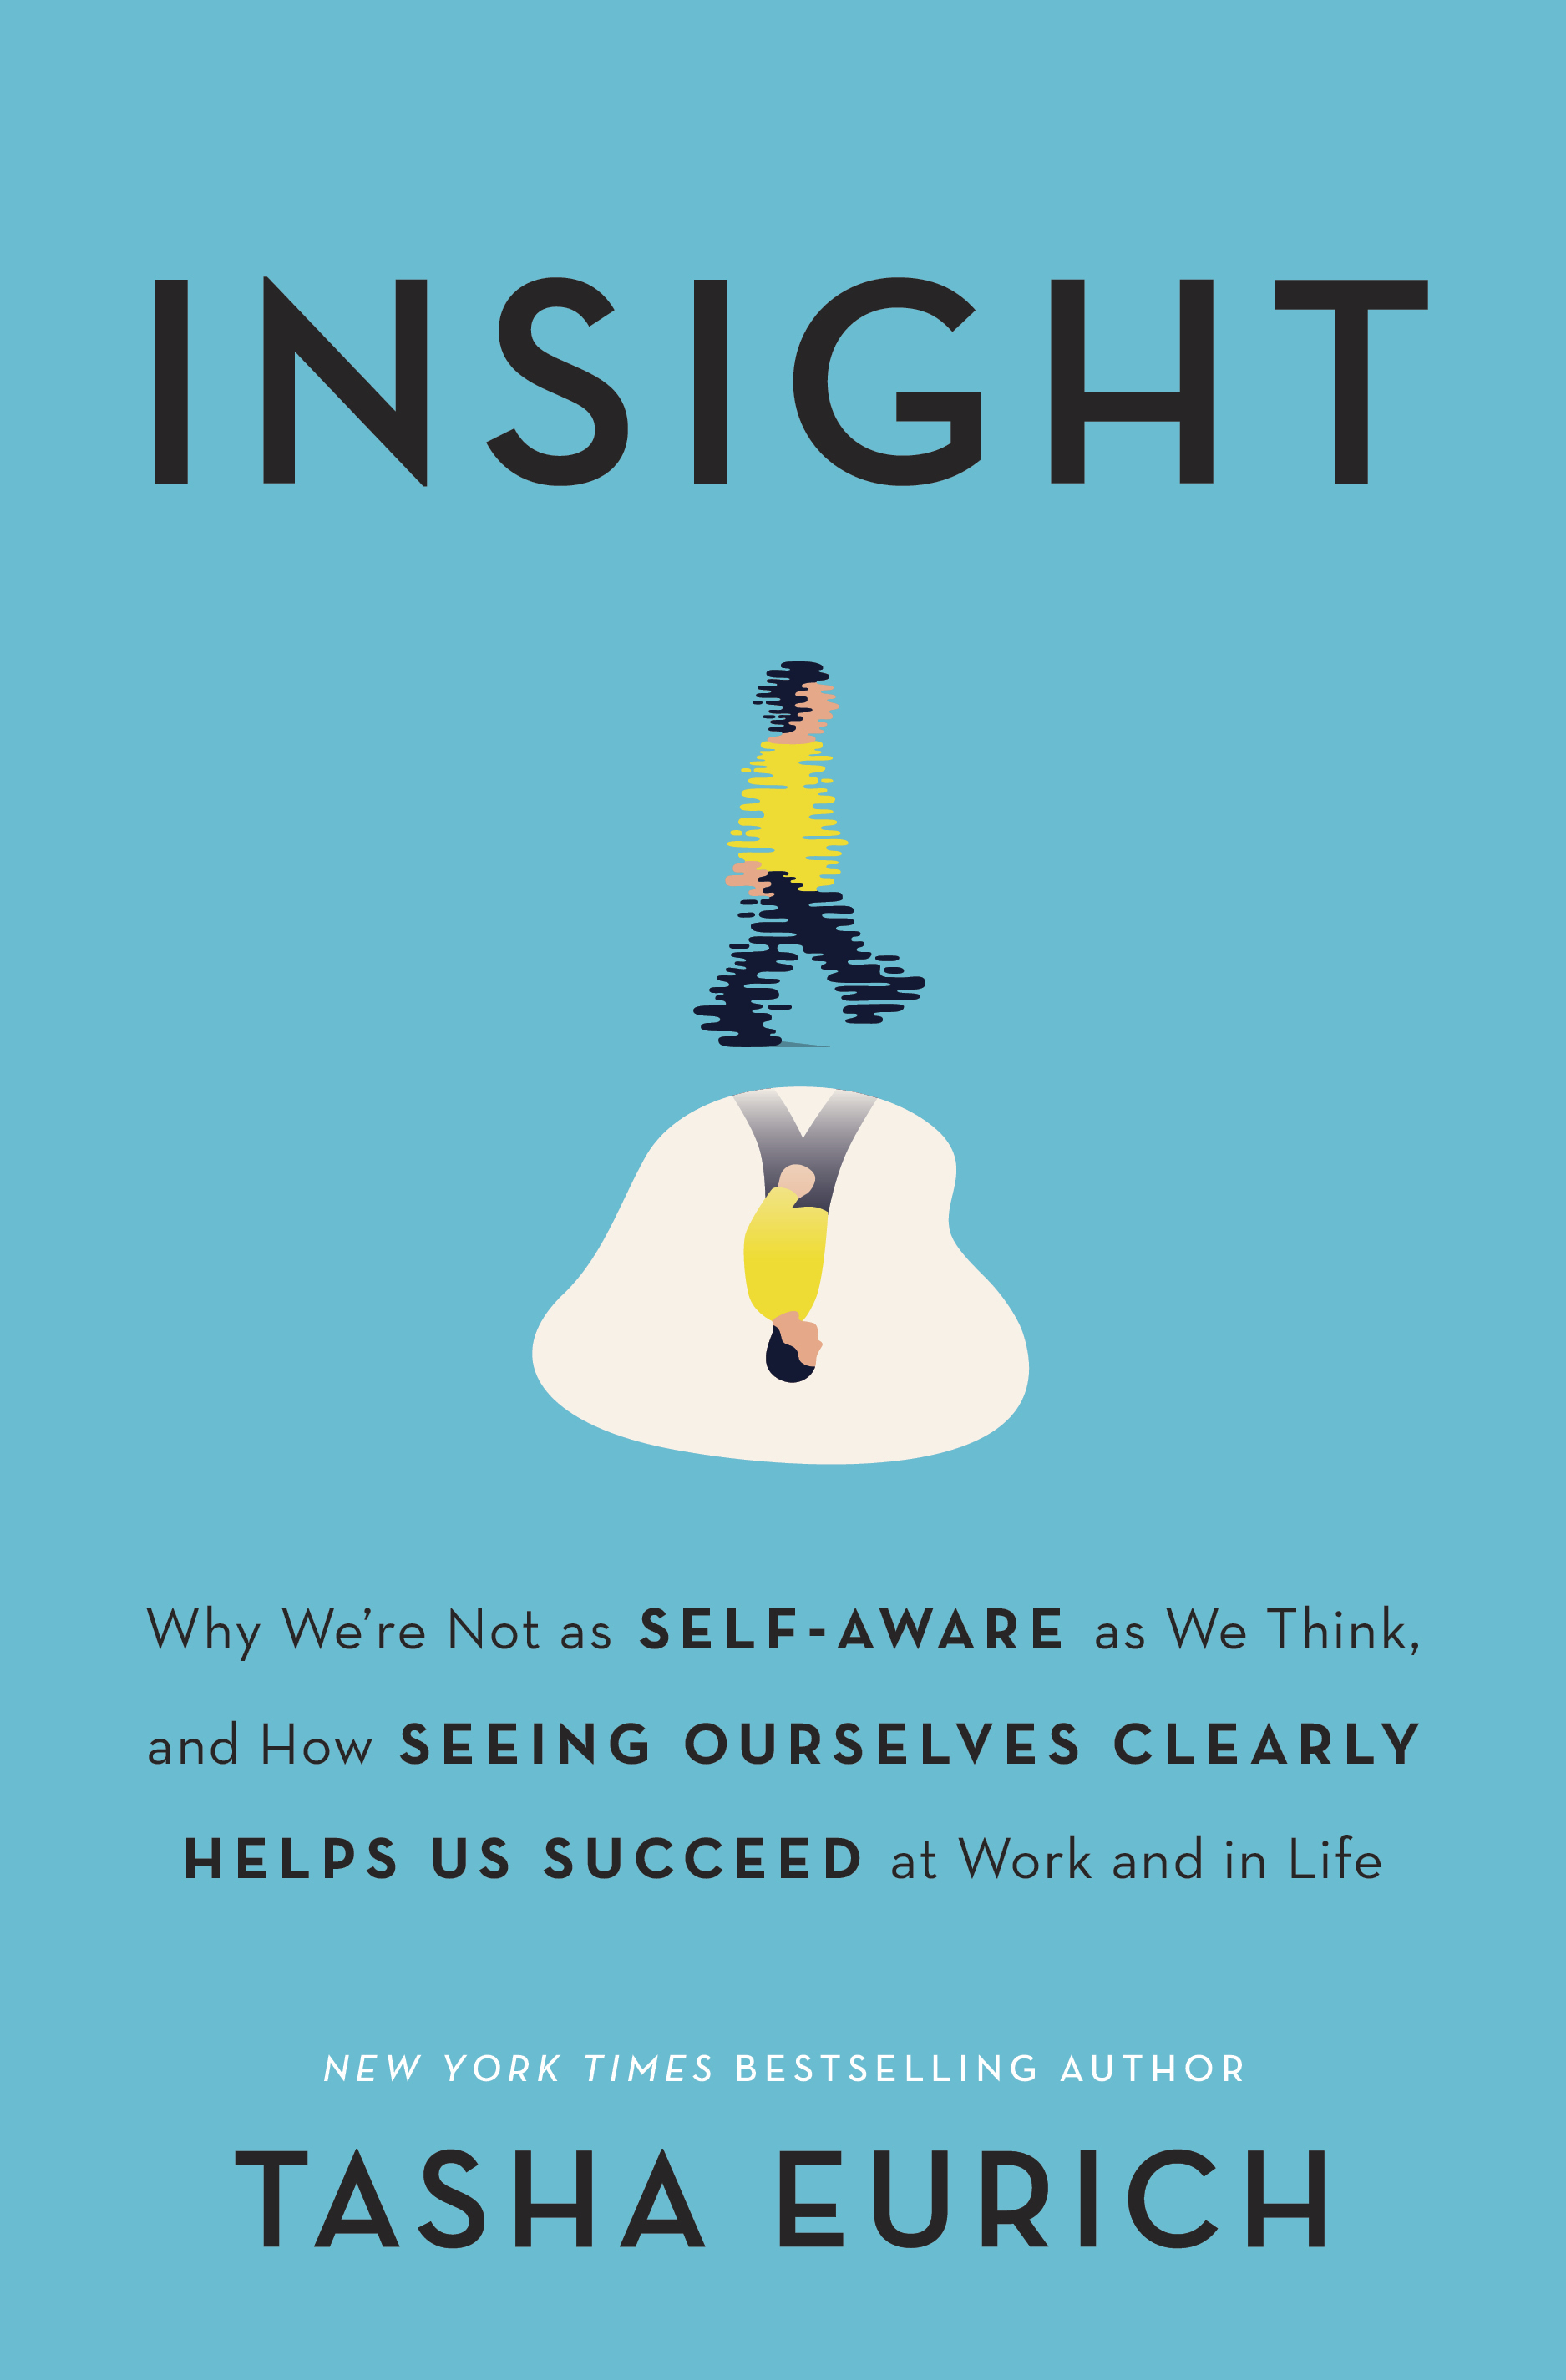 Insight-Why-We-re-Not-as-Self-Aware-as-We-Think-and-How-Seeing-Ourselves-Clnd-in-Life